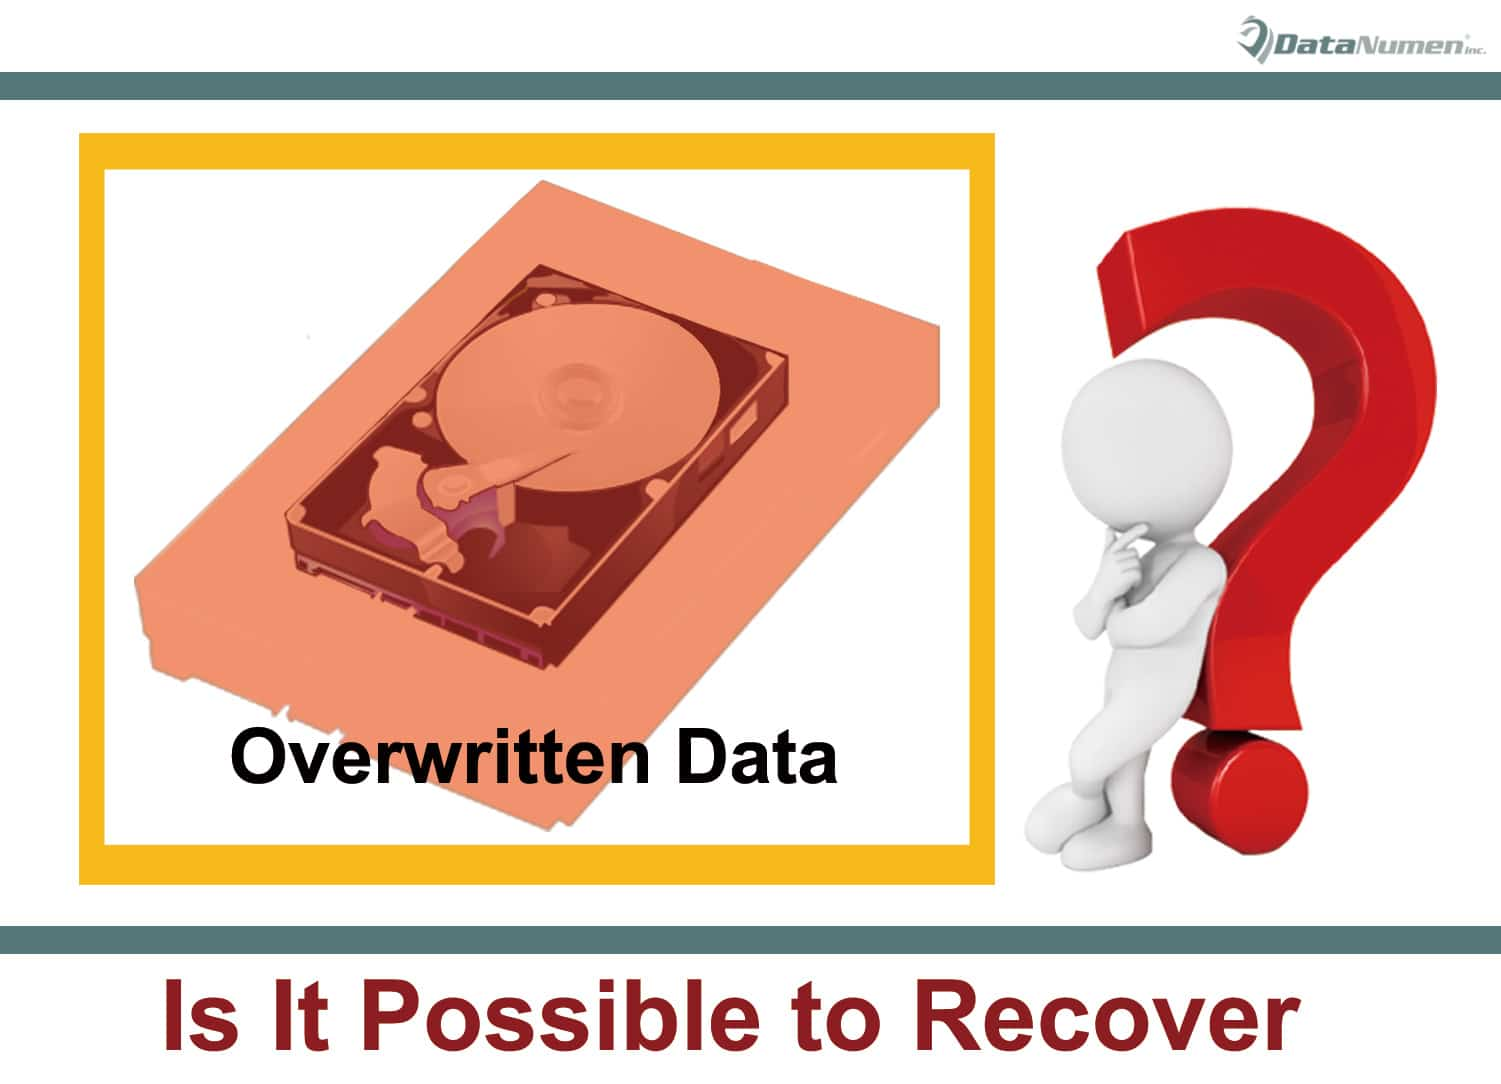 Is It Possible to Recover Overwritten Data